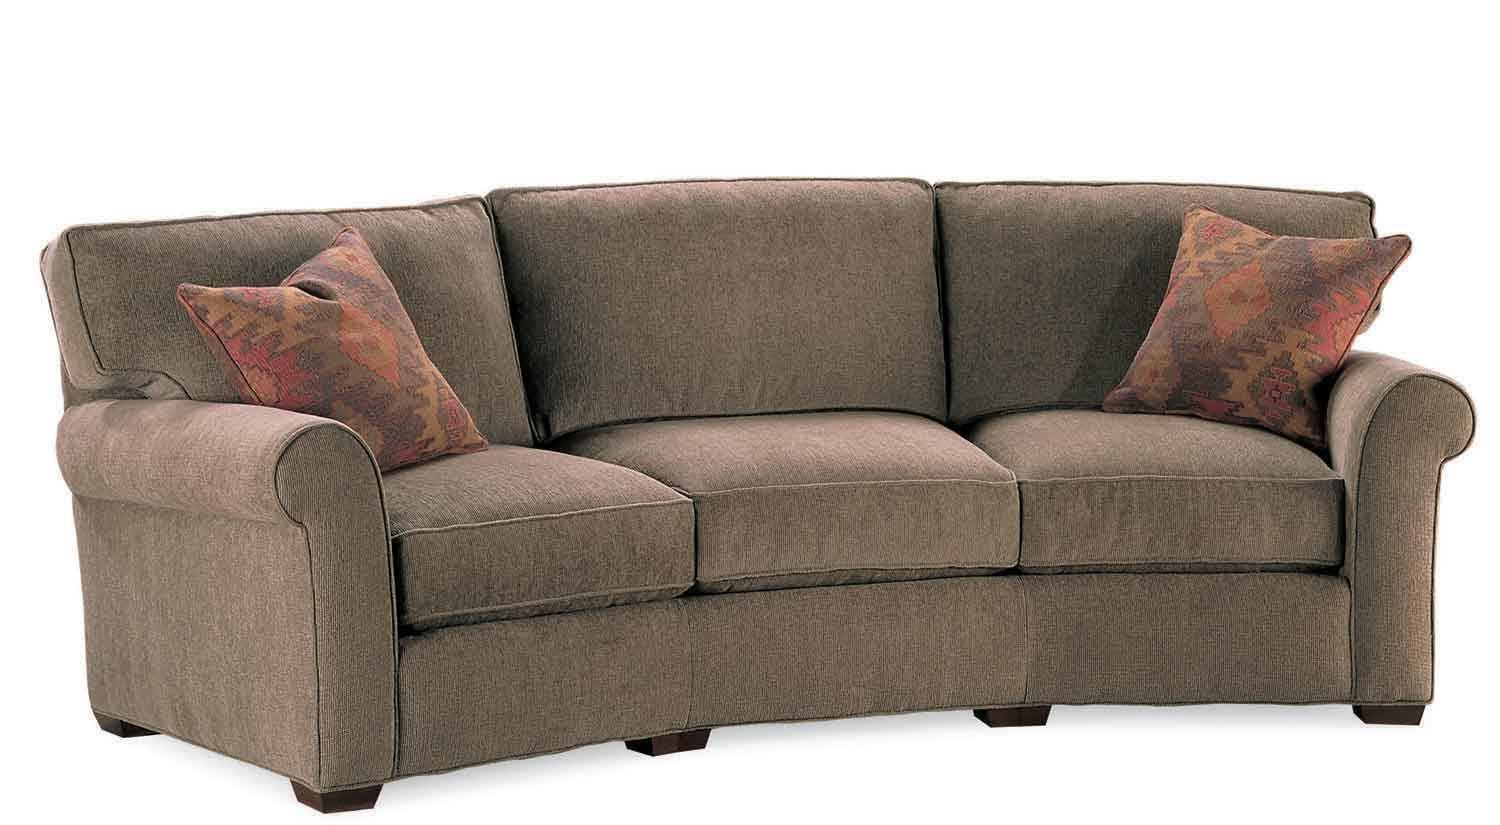 Circle Furniture - Taylor Wedge Sofa | Wedge Couches Ma | Circle intended for Circle Sofas (Image 7 of 25)